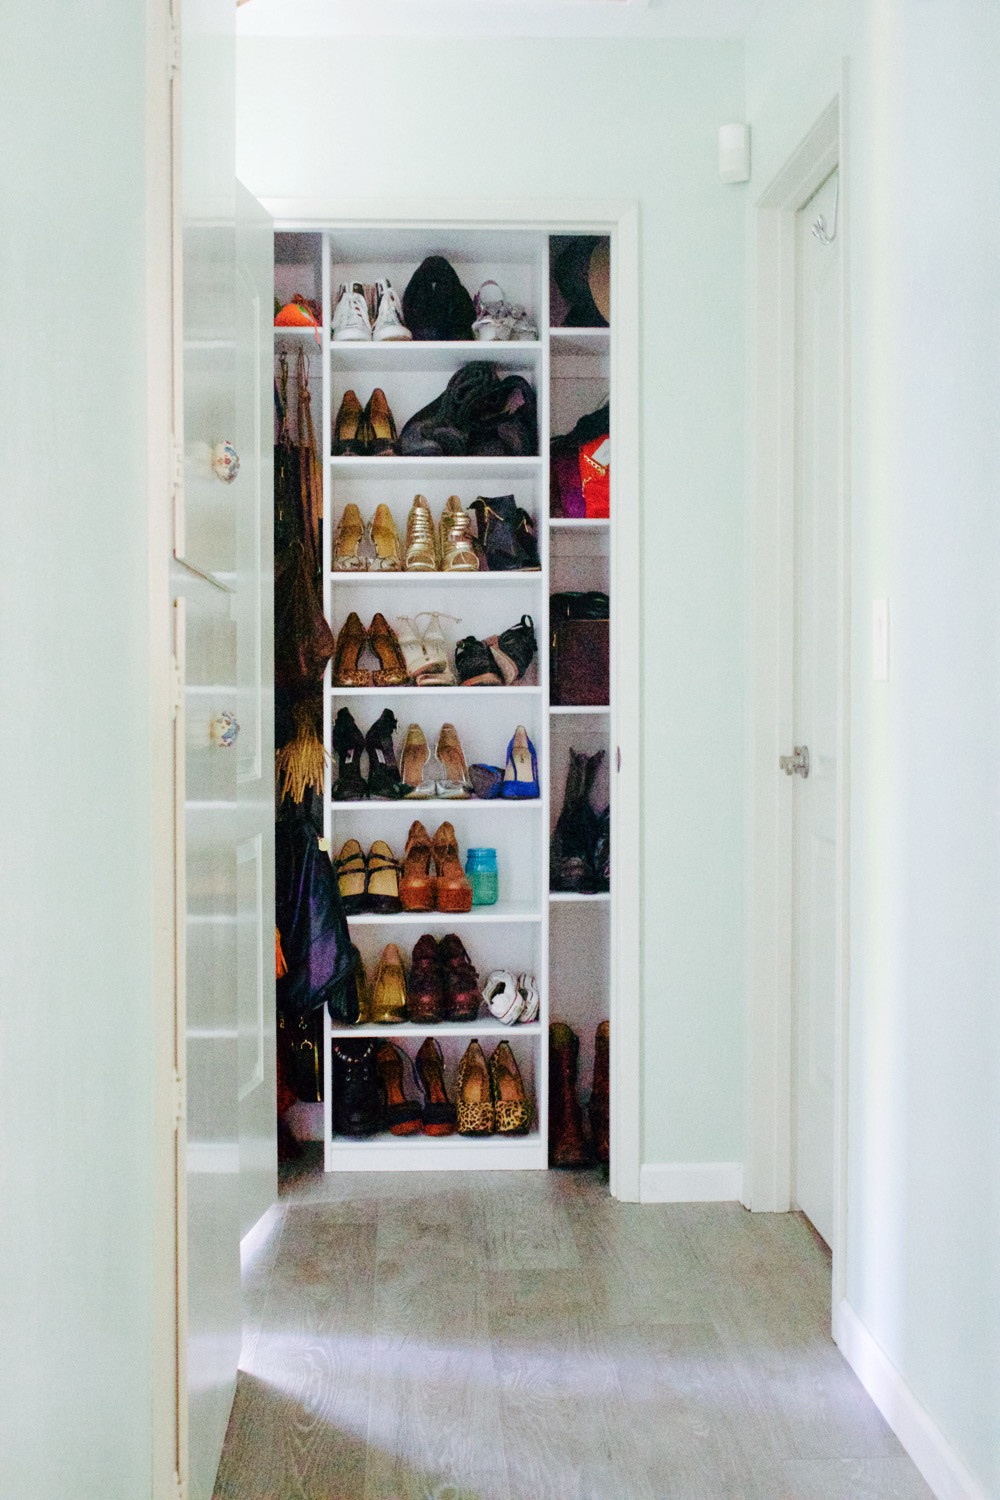 The finished product: a well-organized closet to envy.